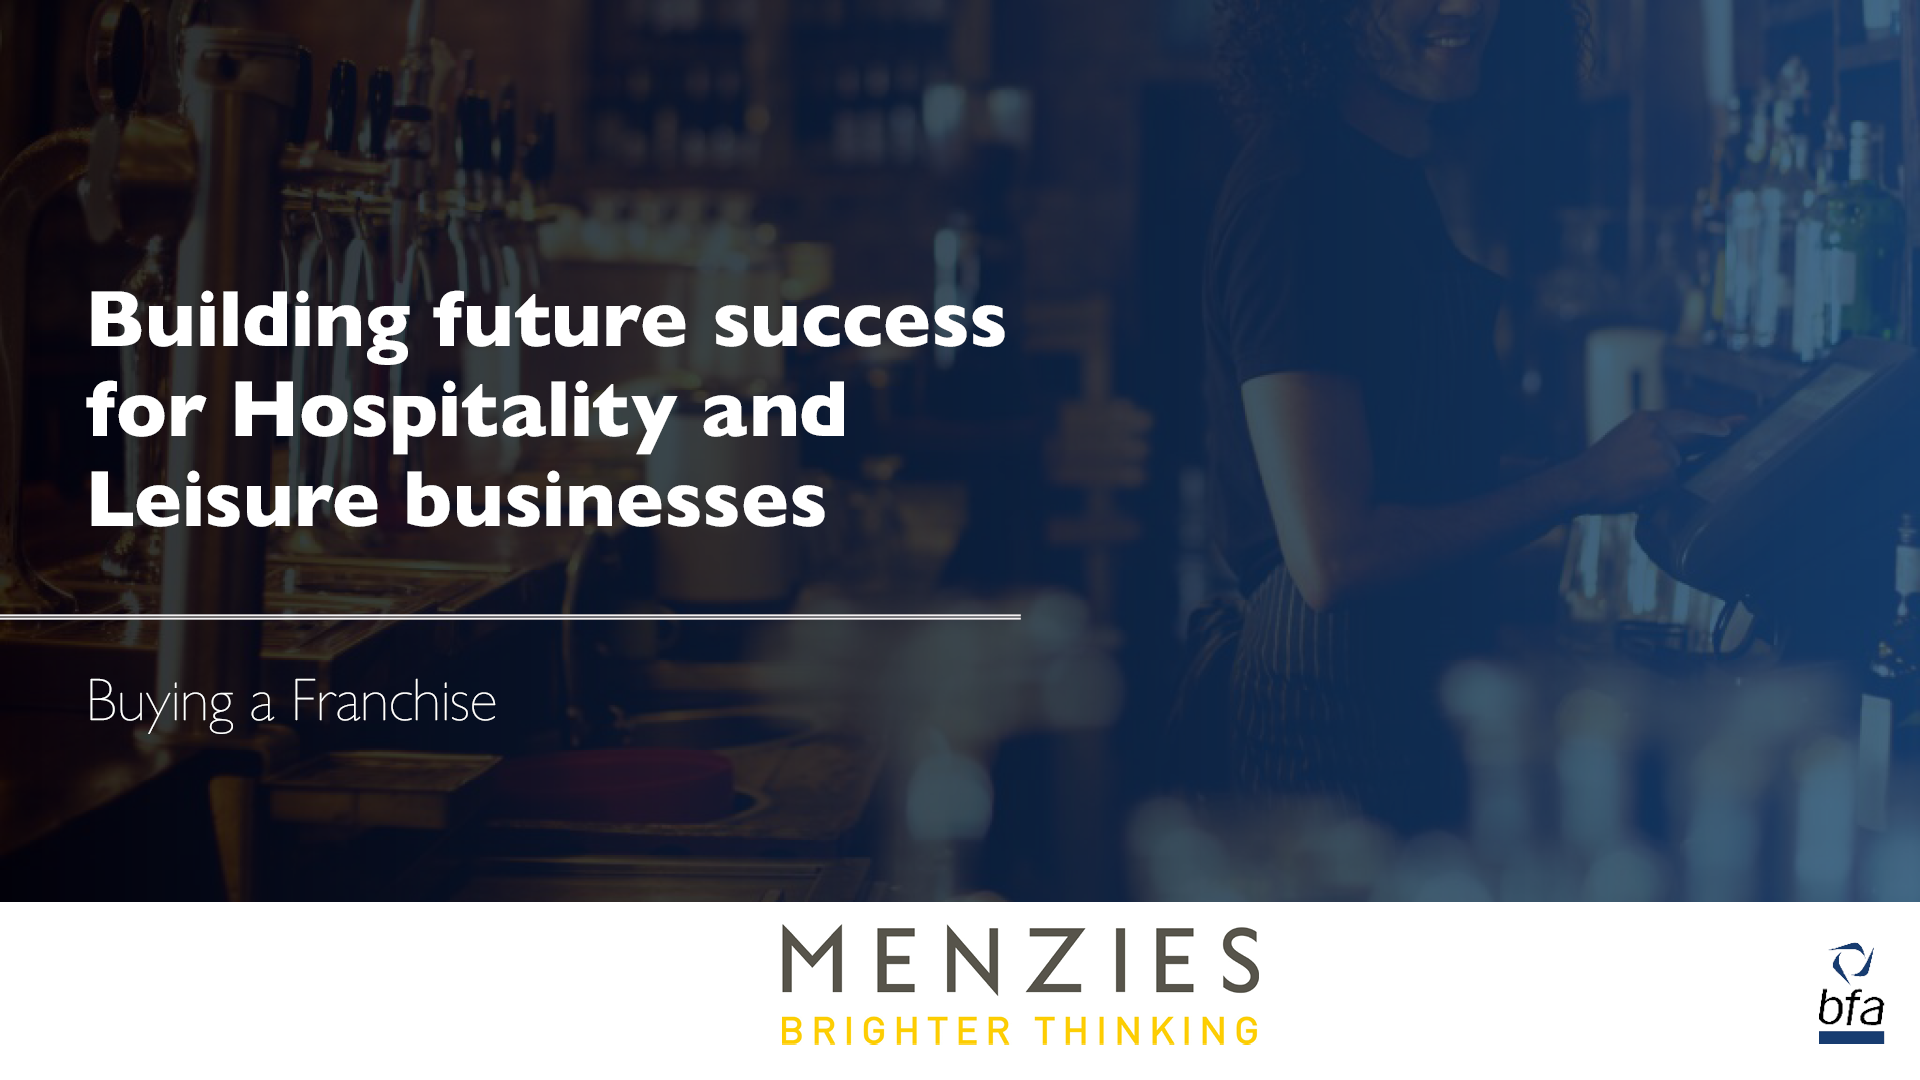 Building future success for Hospitality and Leisure businesses